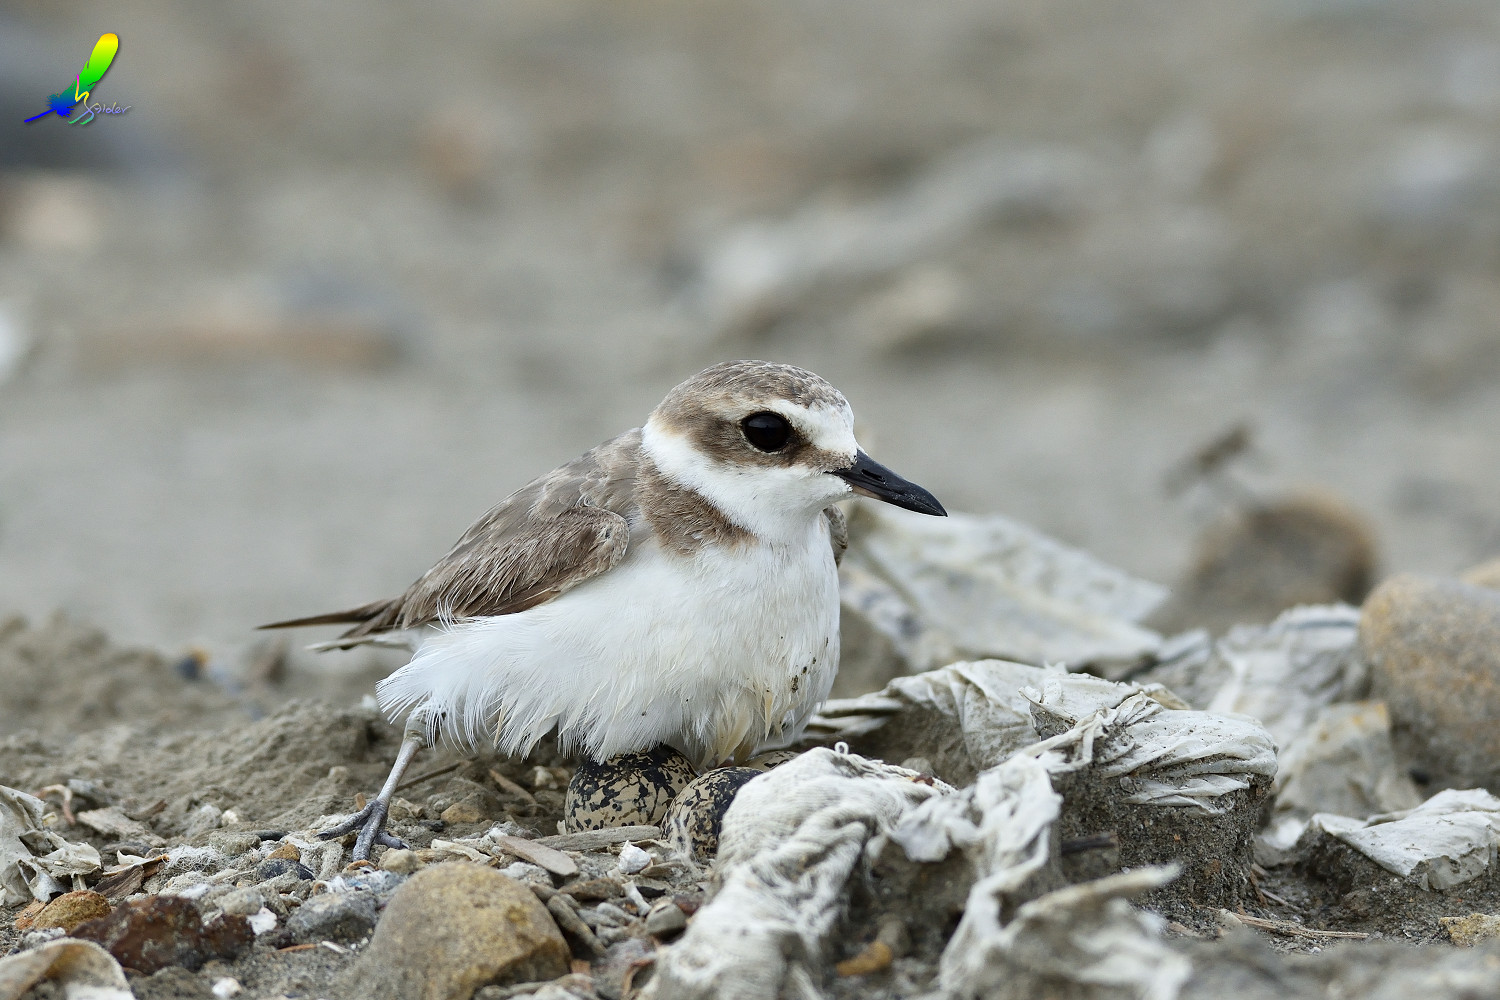 Kentish_Plover_8632